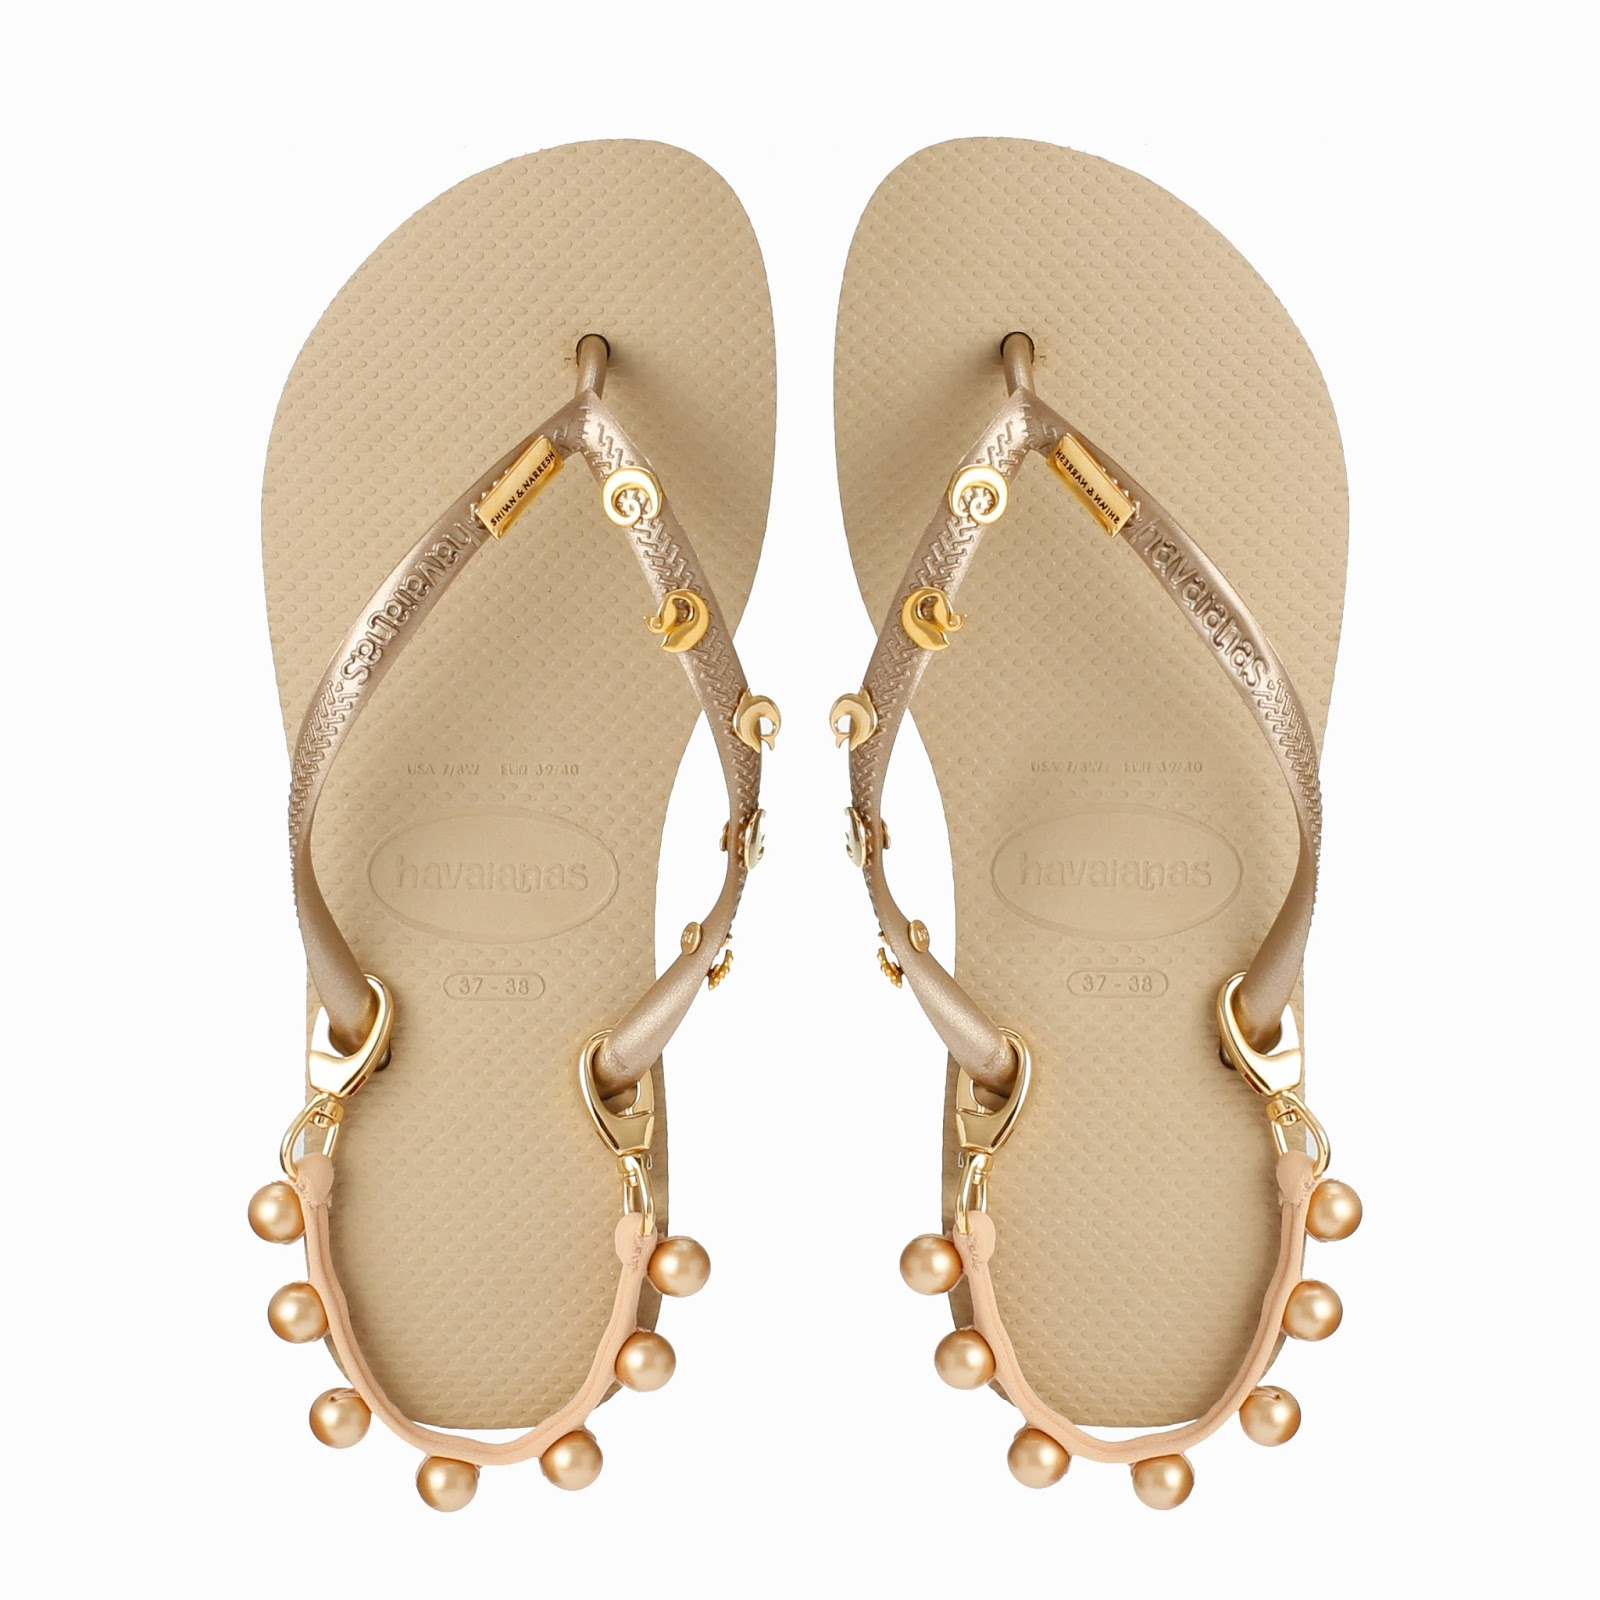 fffcf43d4322 Havaianas launches their 3.0 collection with designer duo SHIVAN ...